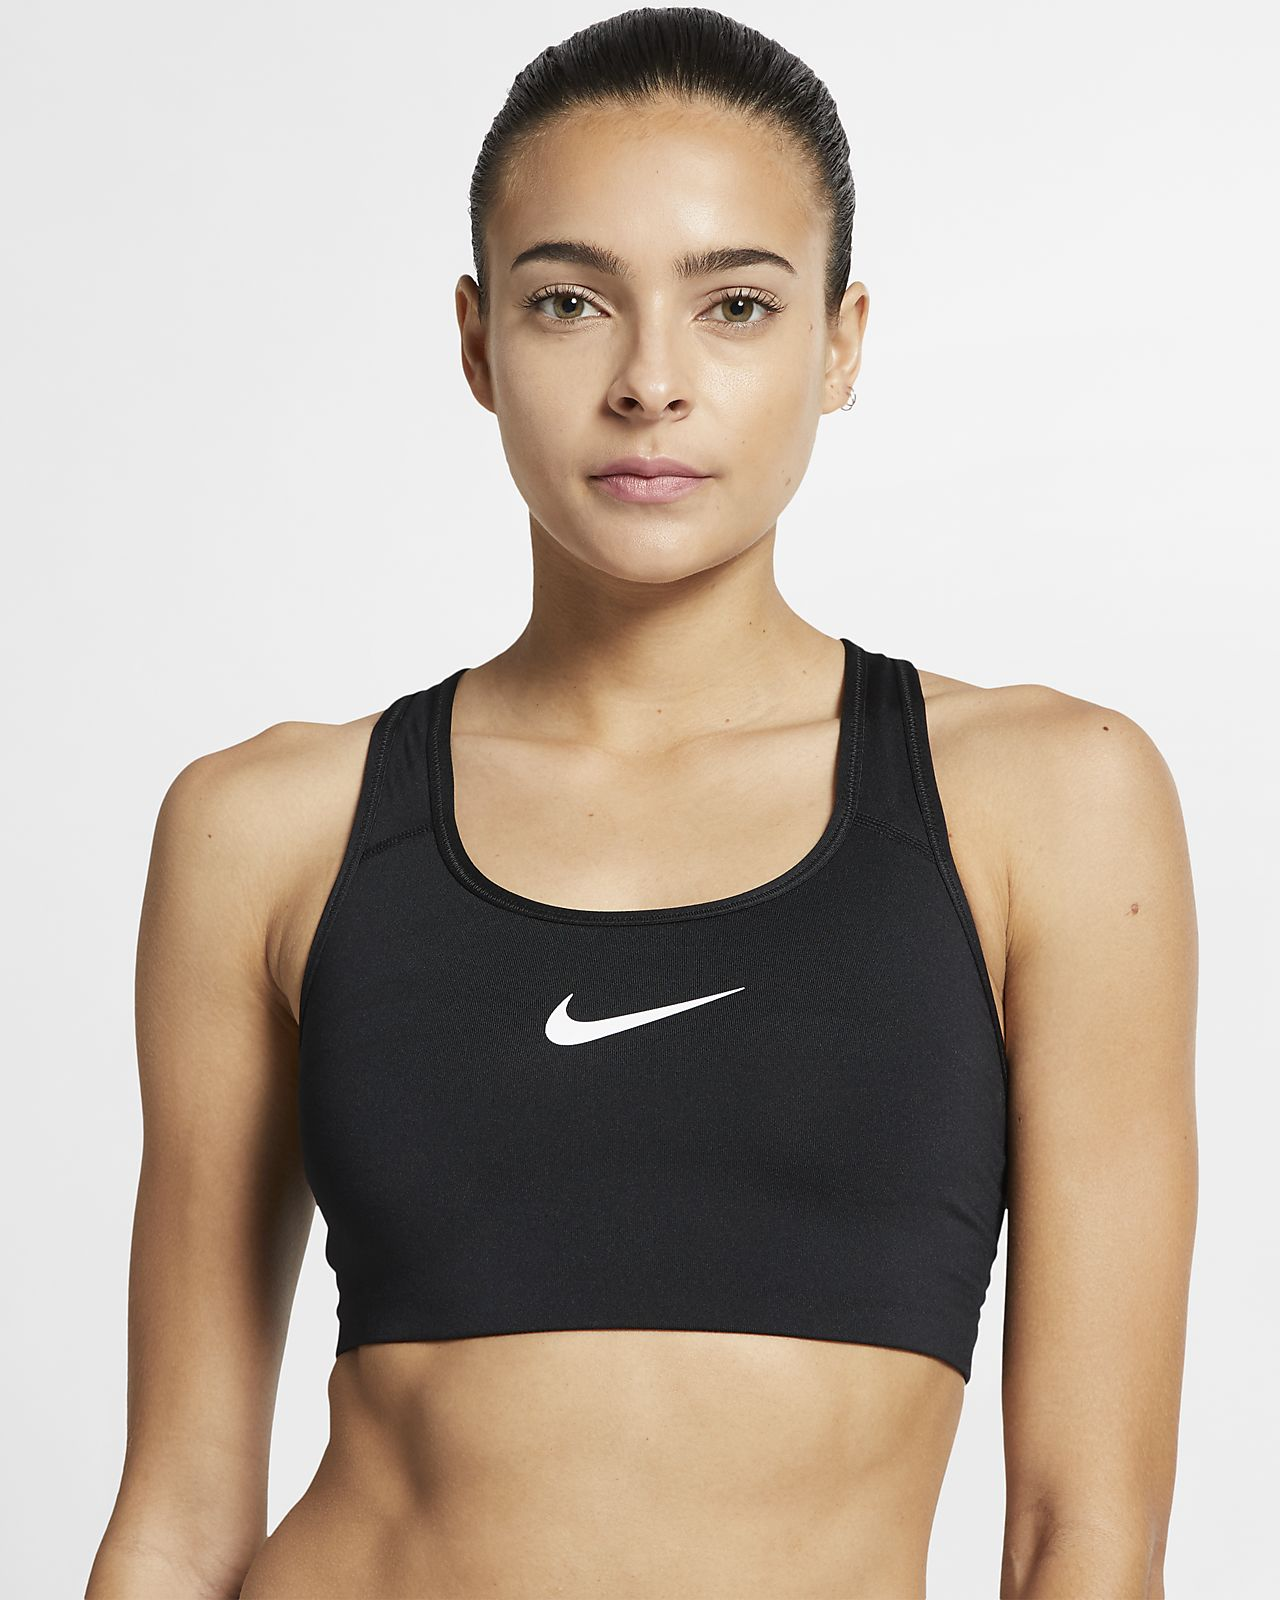 Nike Swoosh Women's Medium-Support Non-Padded Sports Bra